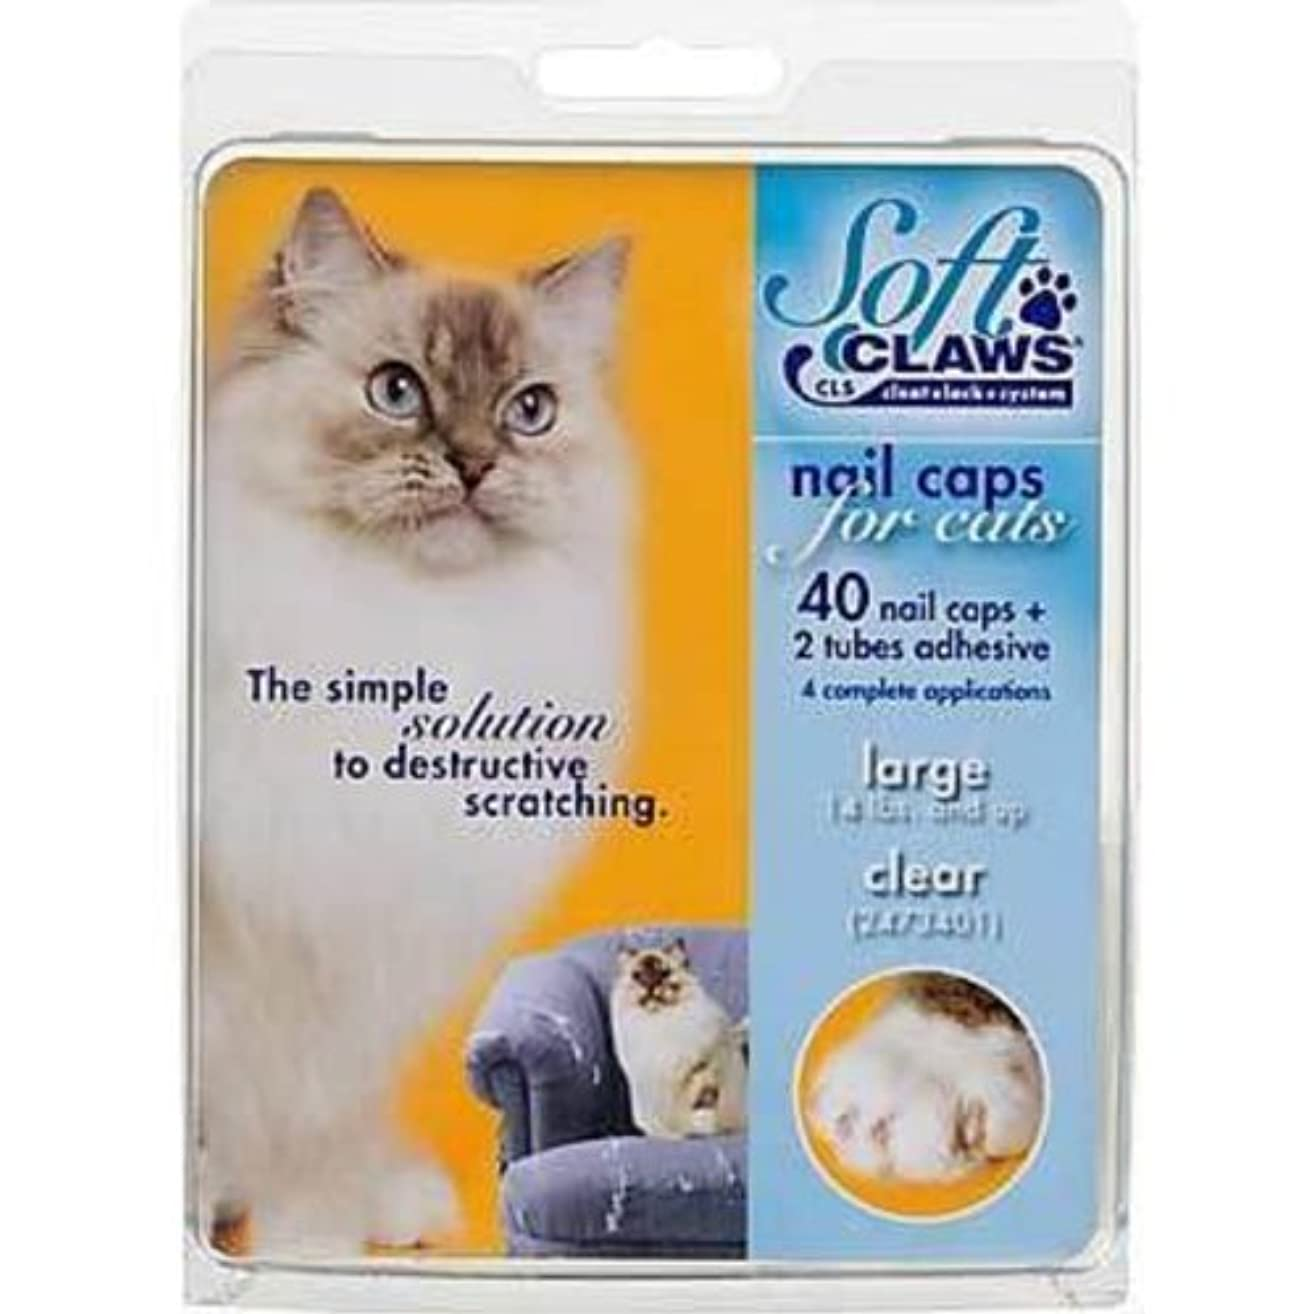 Soft Claws Nail Caps for Cats, Large Clear CLS (Cleat Lock System) Size 14+ lbs